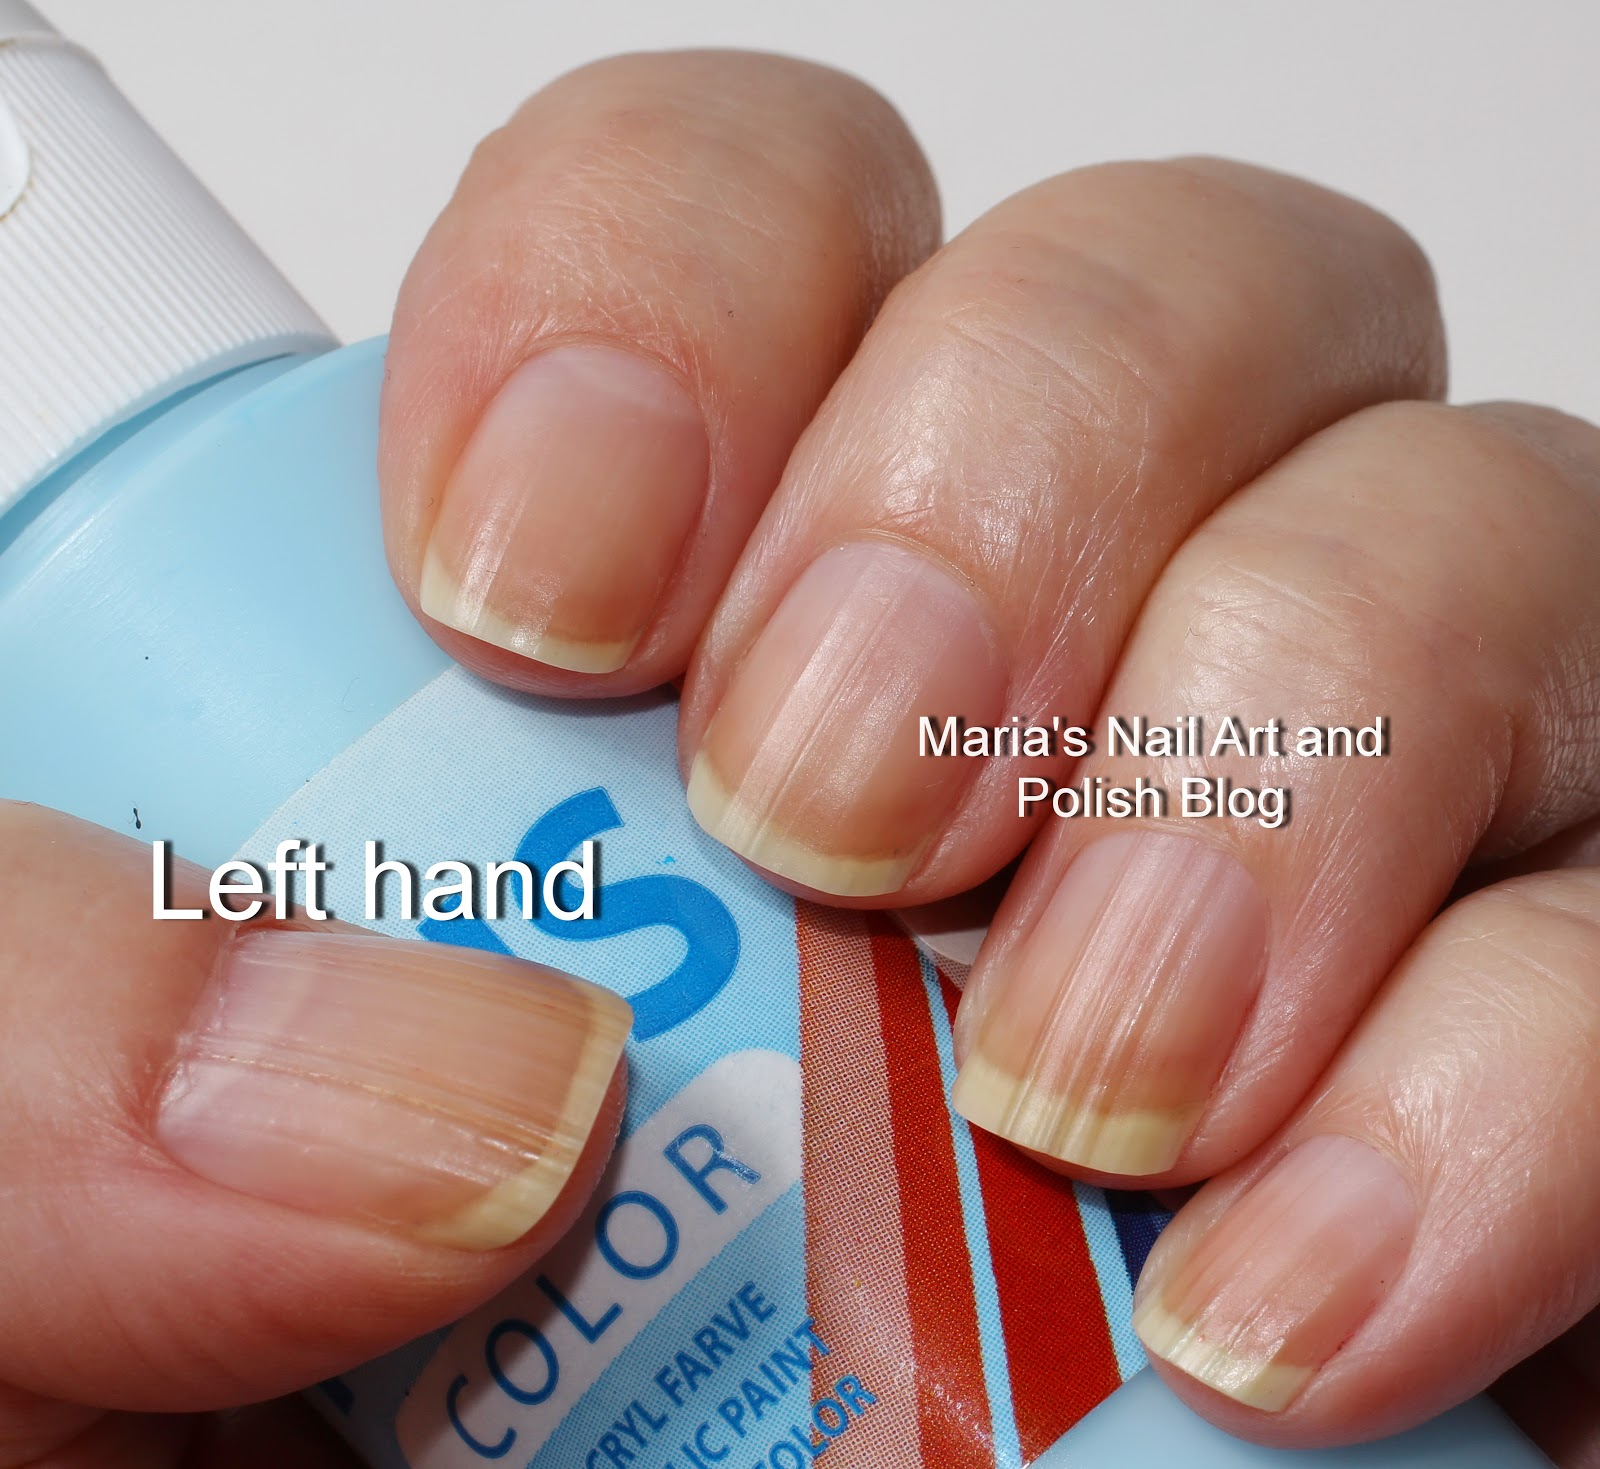 Marias Nail Art and Polish Blog: Nail ridges and ridge fillers I tested